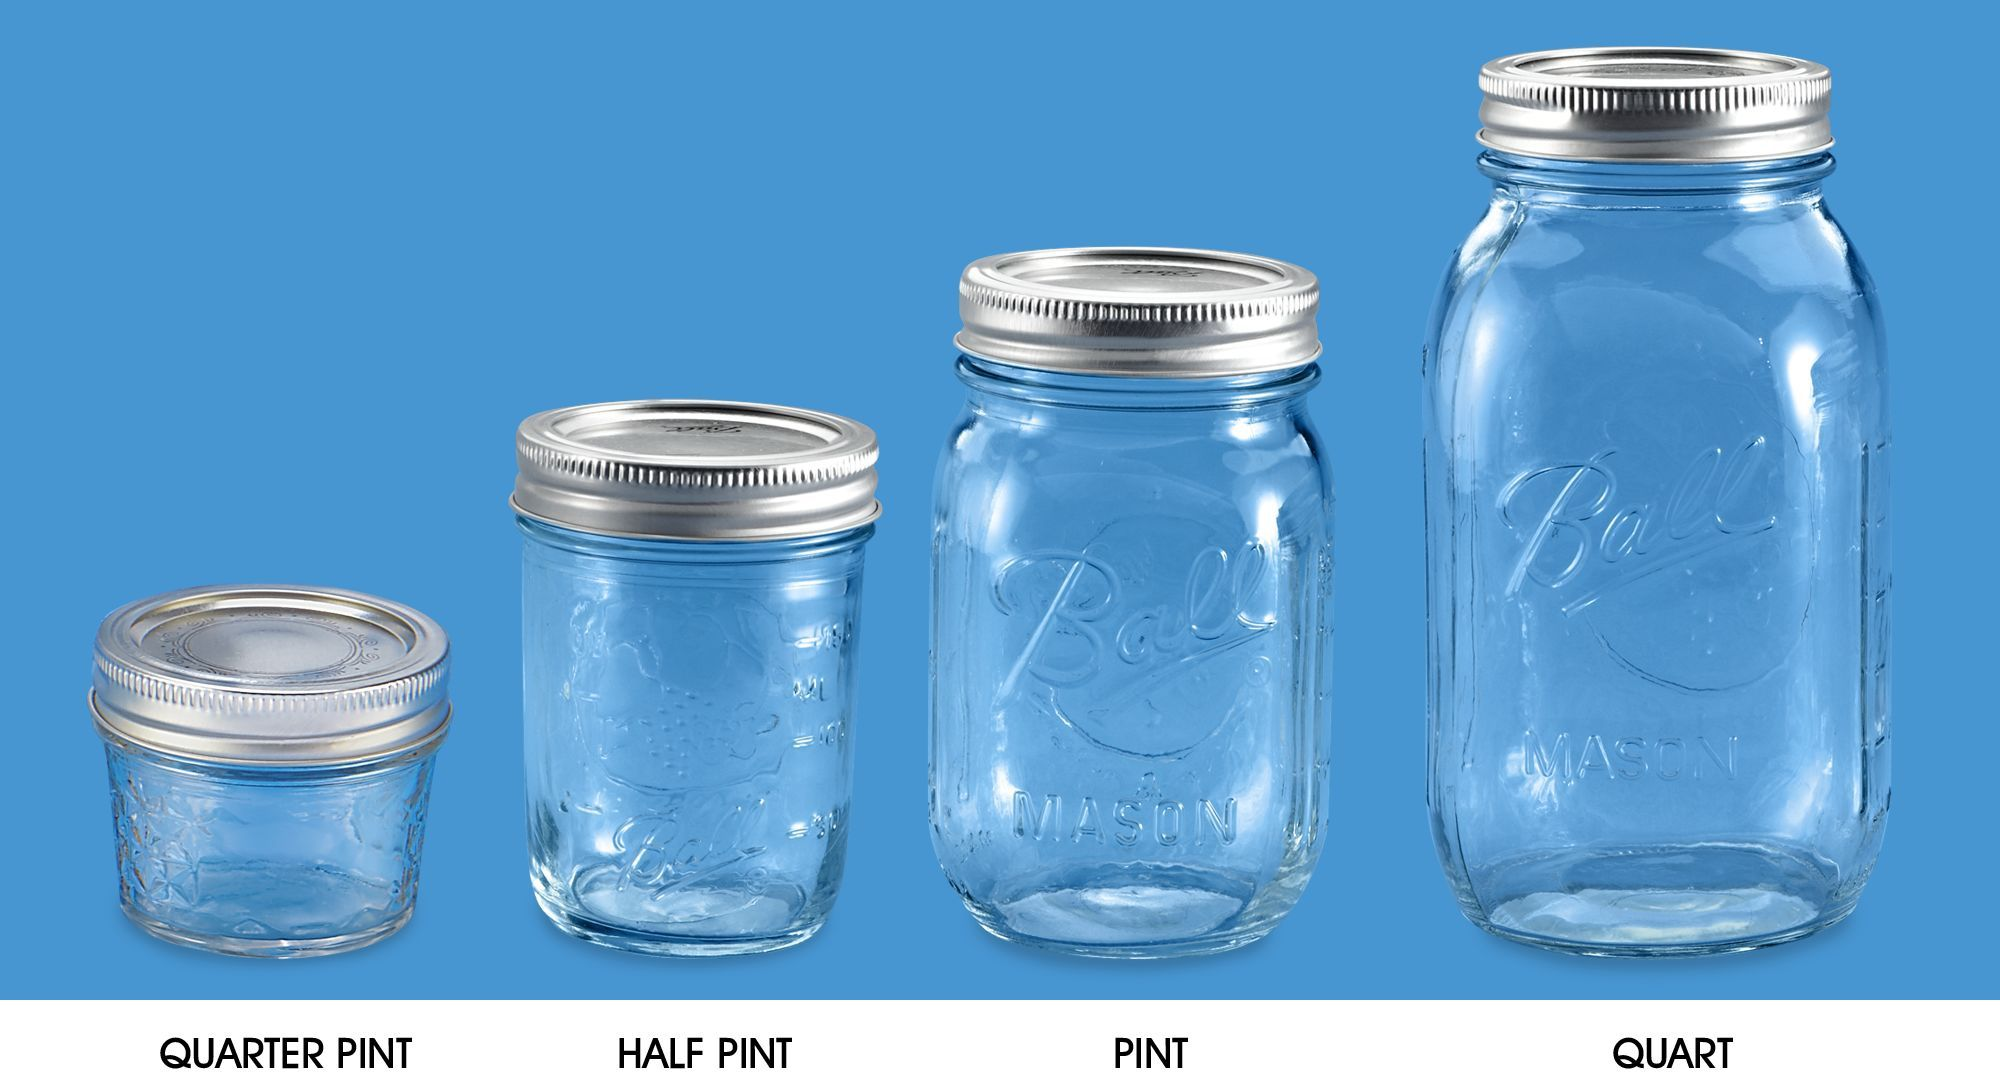 Canning Jars Mason Jars Amp Ball Jars In Stock Uline With